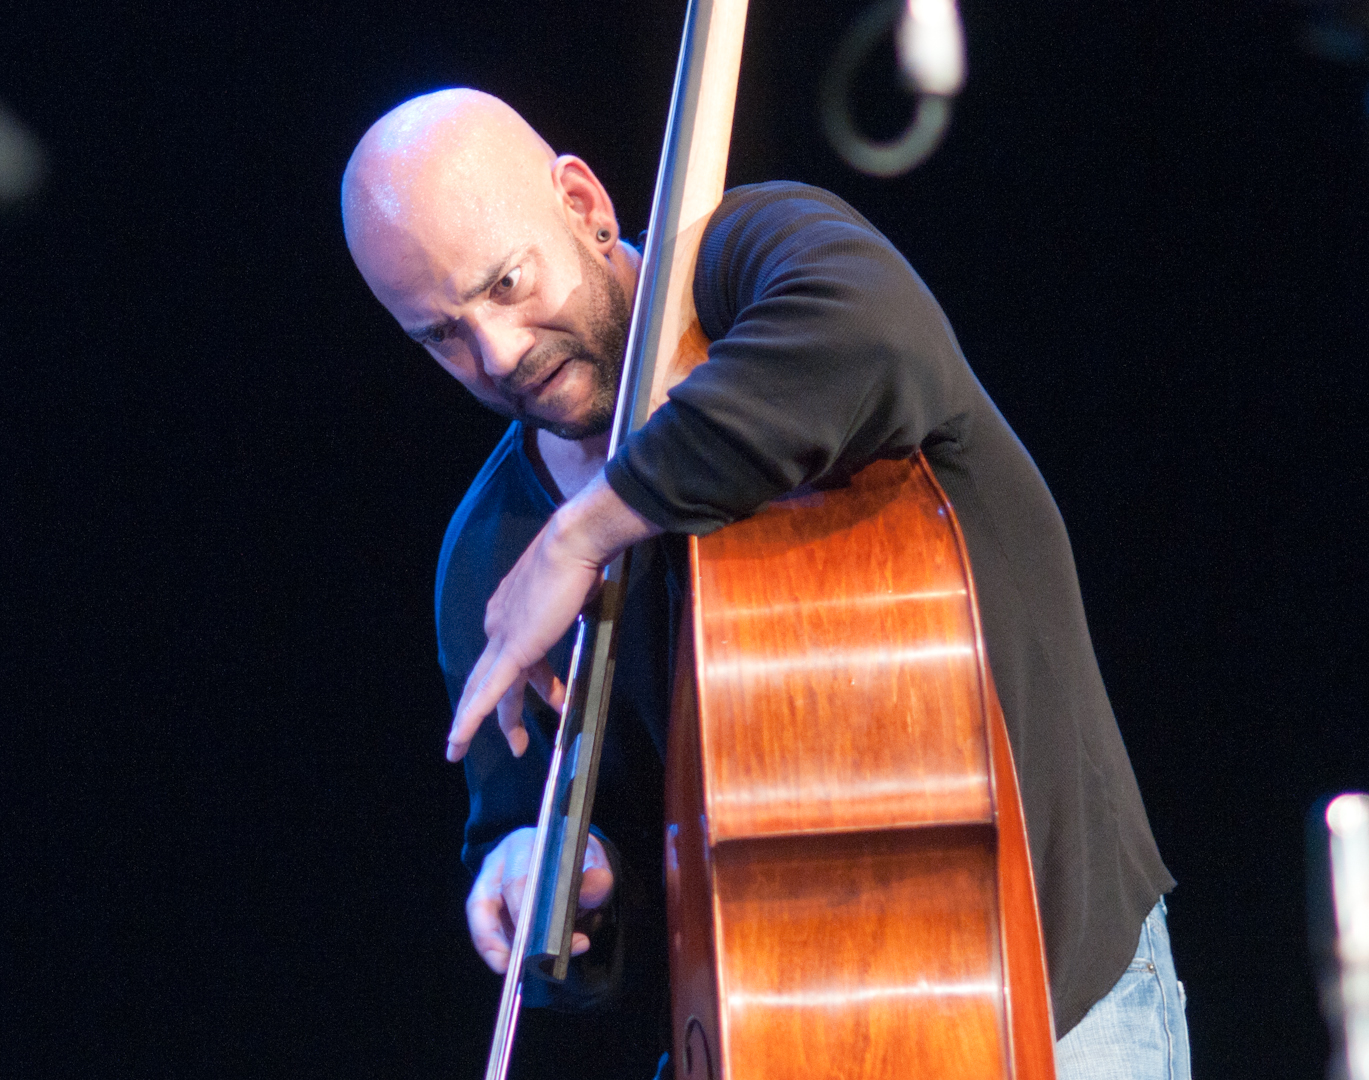 Eric Revis with Peter Brotzmann's Quartet at the Vision Festival 2011